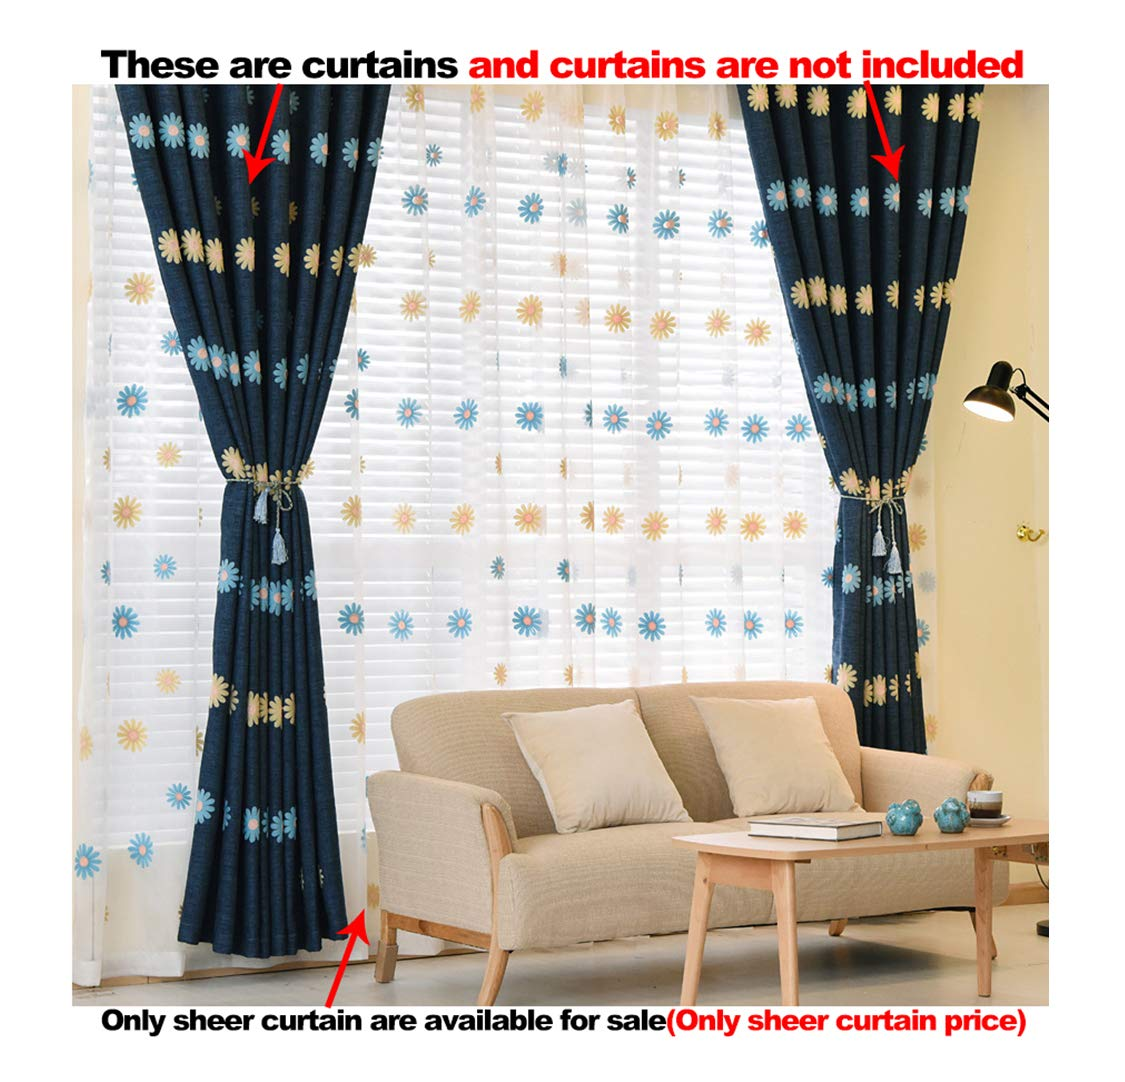 ASide BSide Leisure Style Rod Pocket Top Sunflowers Embroidered Sheer Curtains Transparent Window Decoration For Sitting Room Child Room and Houseroom (1 Panel, W 52 x L 84 inch, White) by ASide BSide (Image #1)